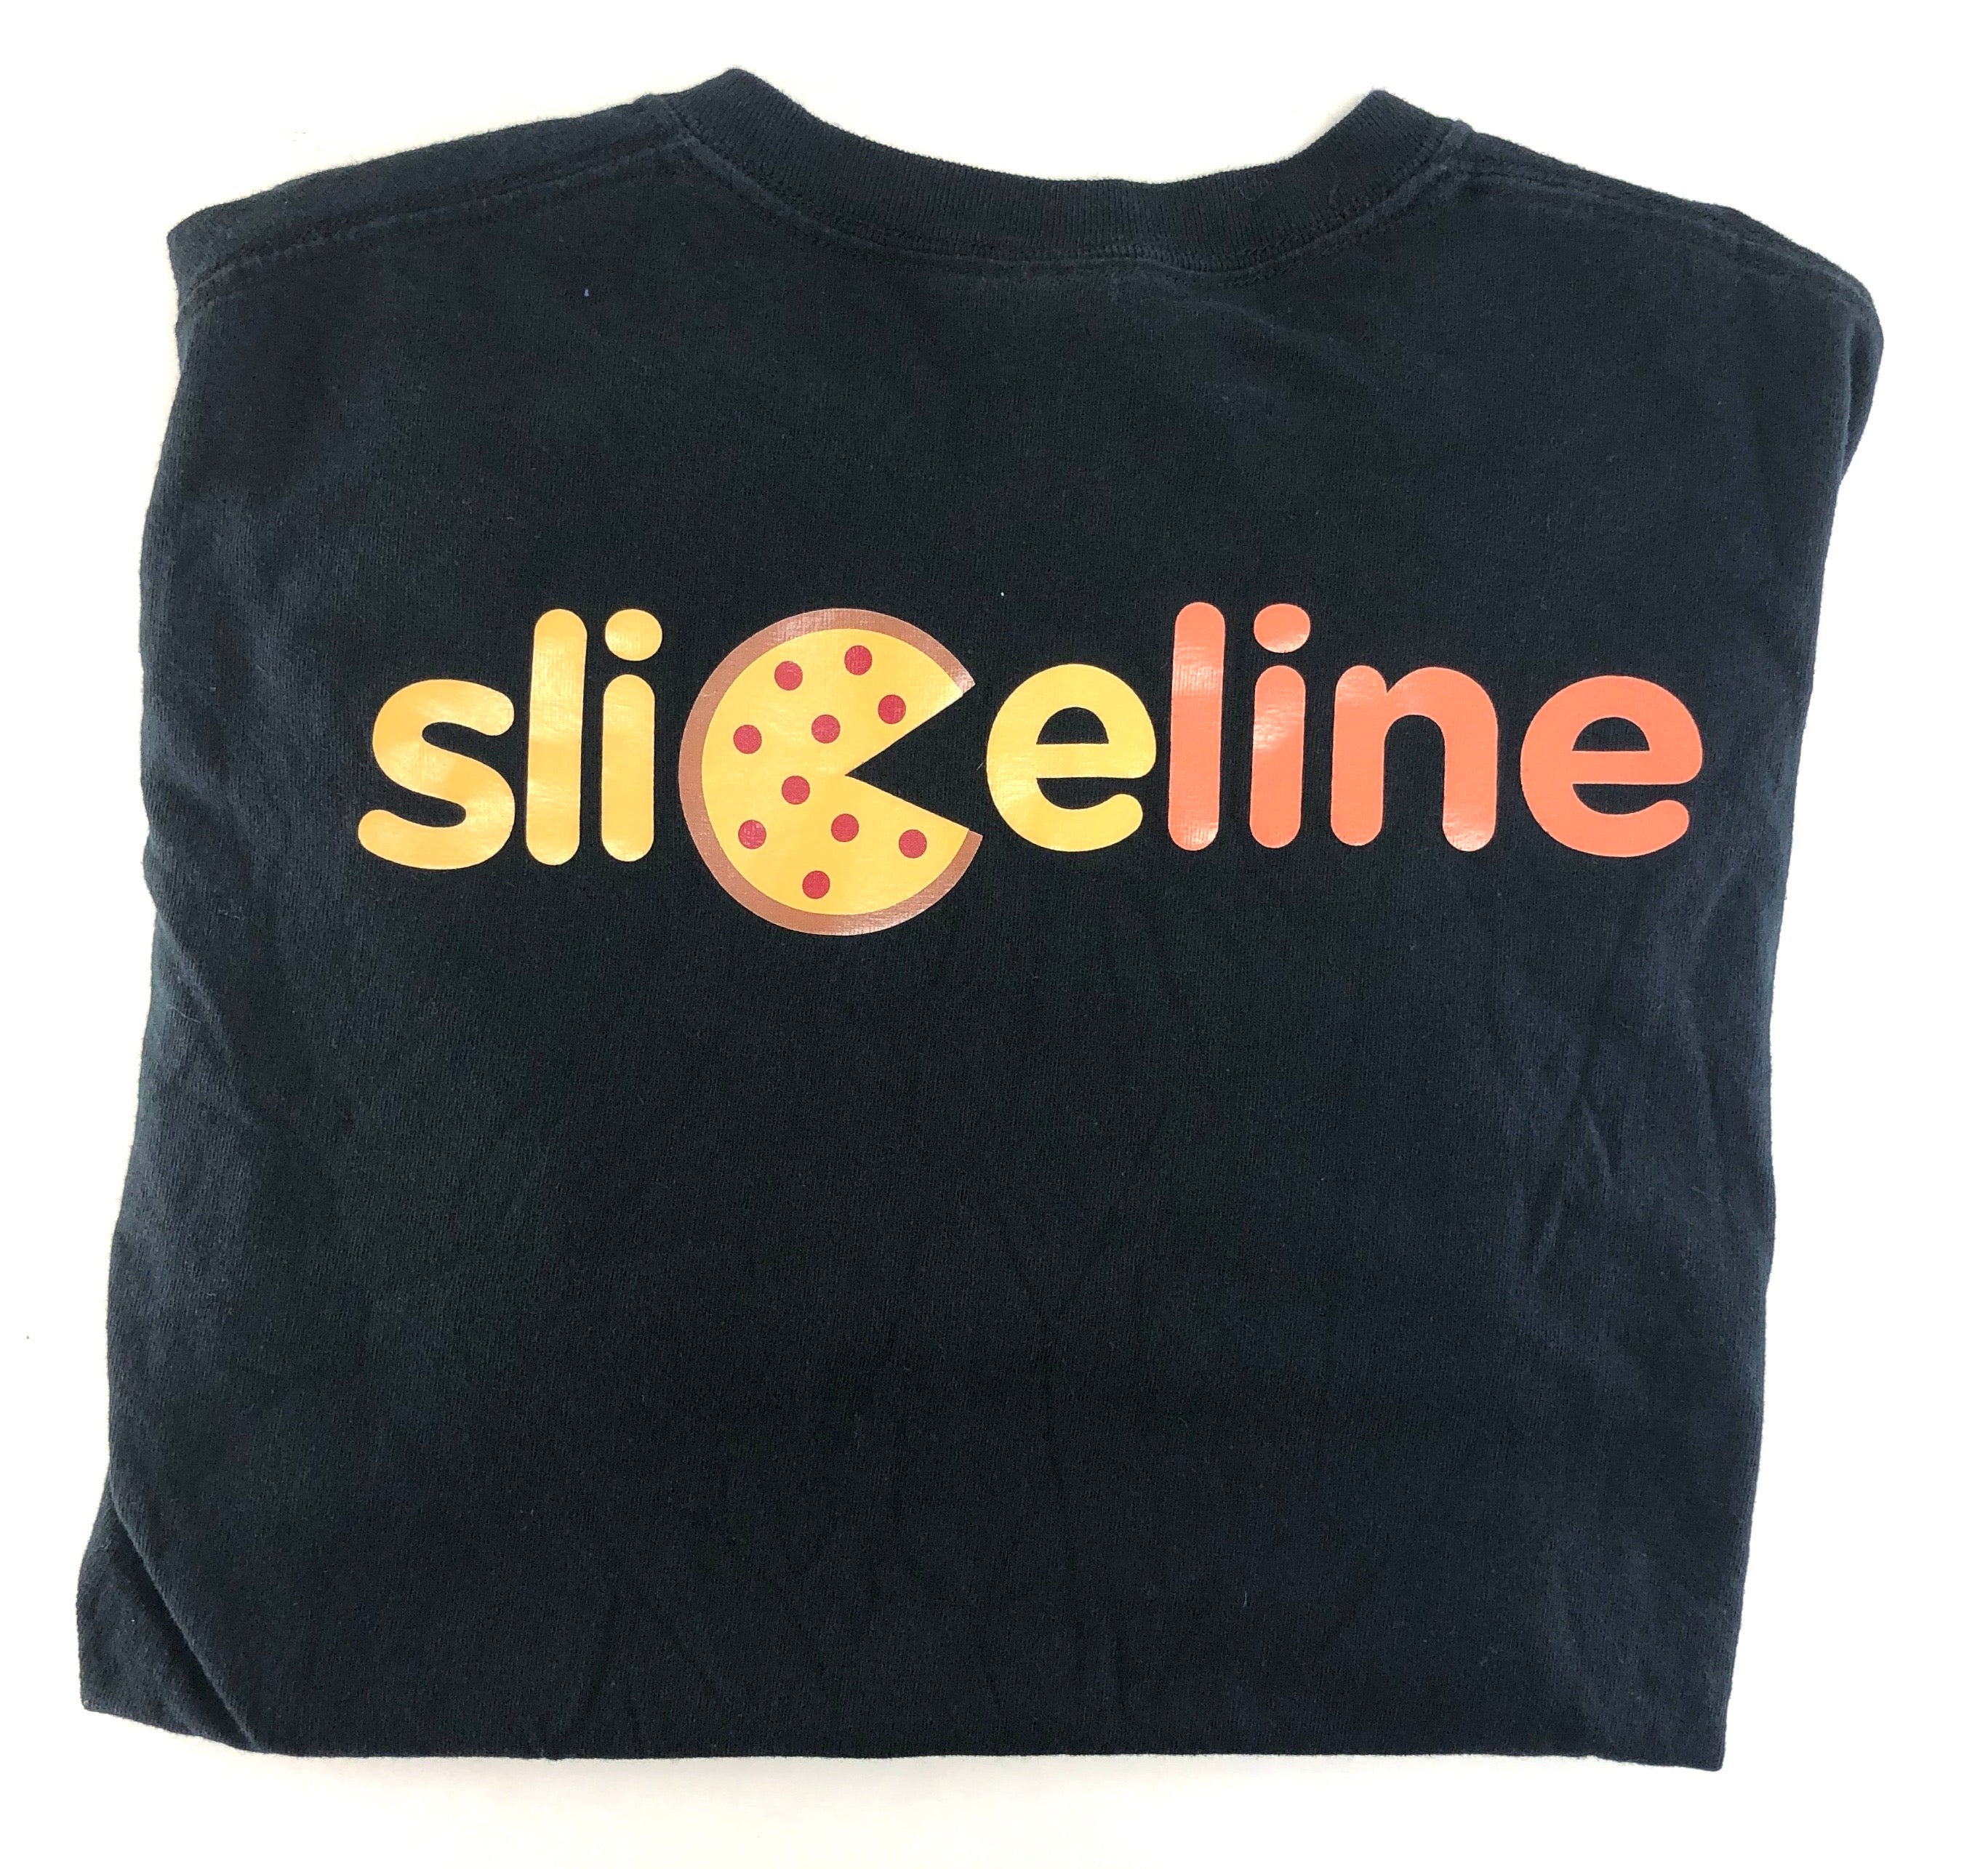 SILICON VALLEY: Sliceline Black T Shirt